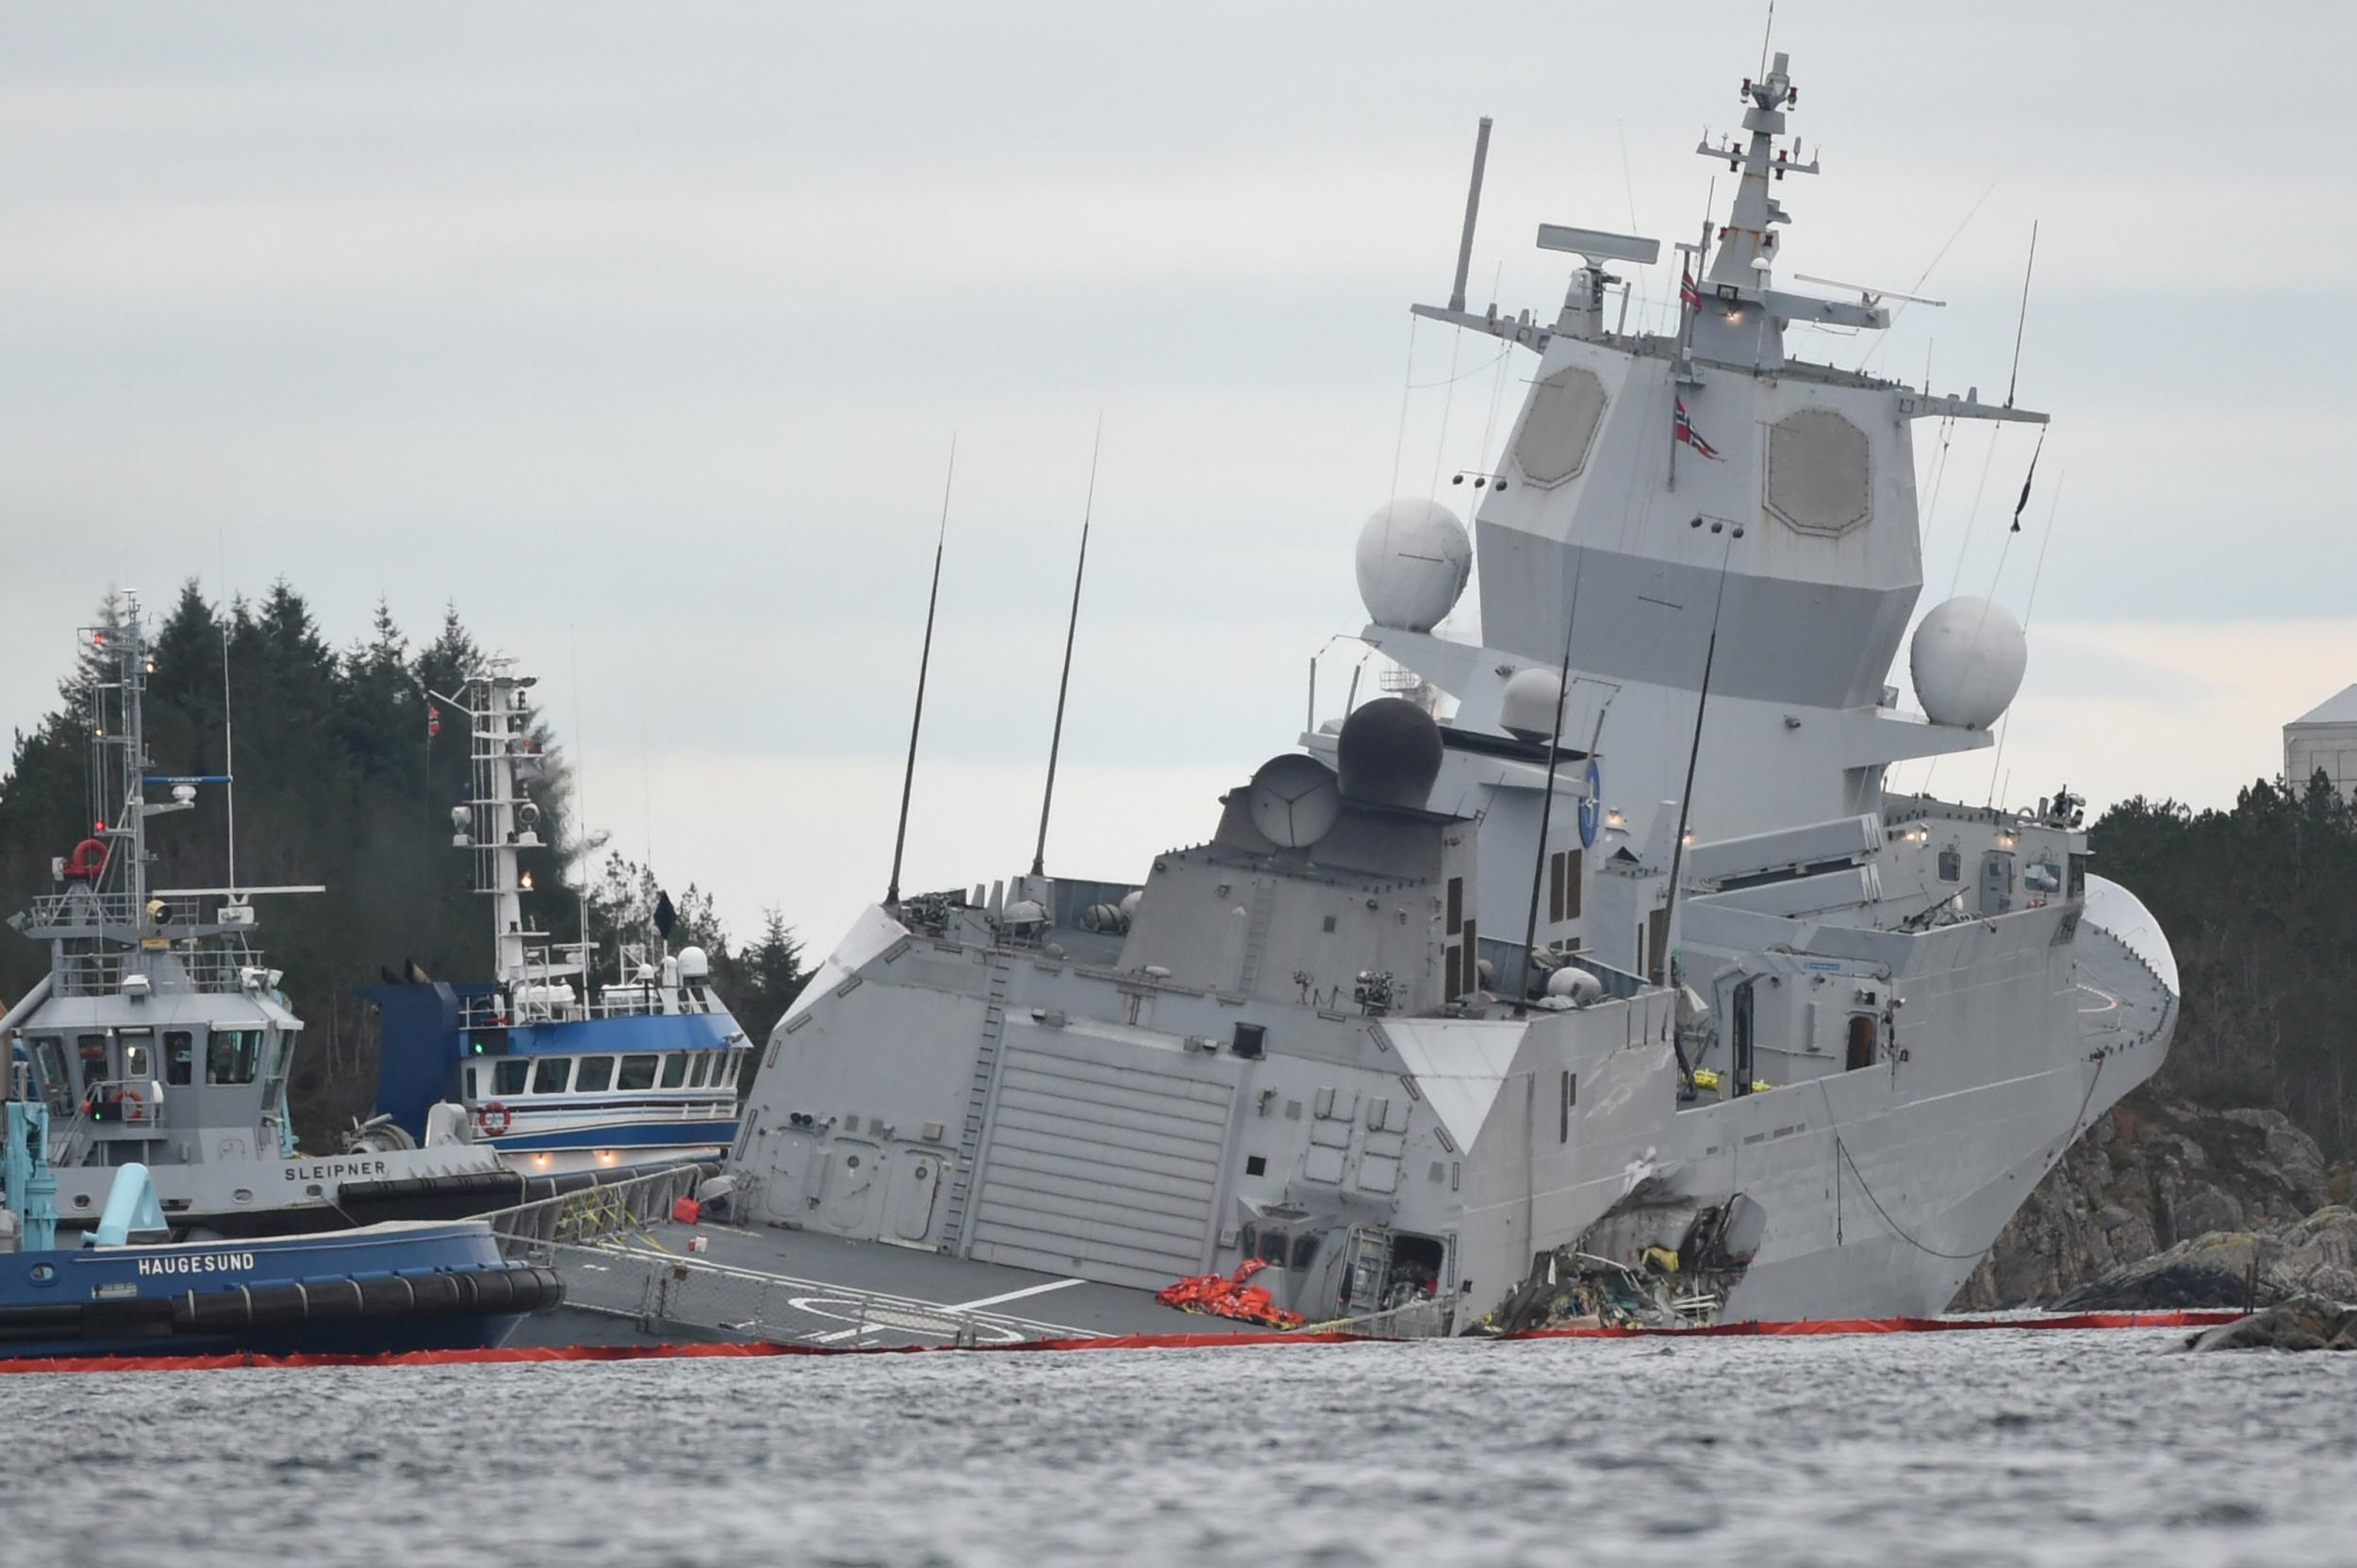 Warship at risk of sinking to bottom of Norwegian fjord